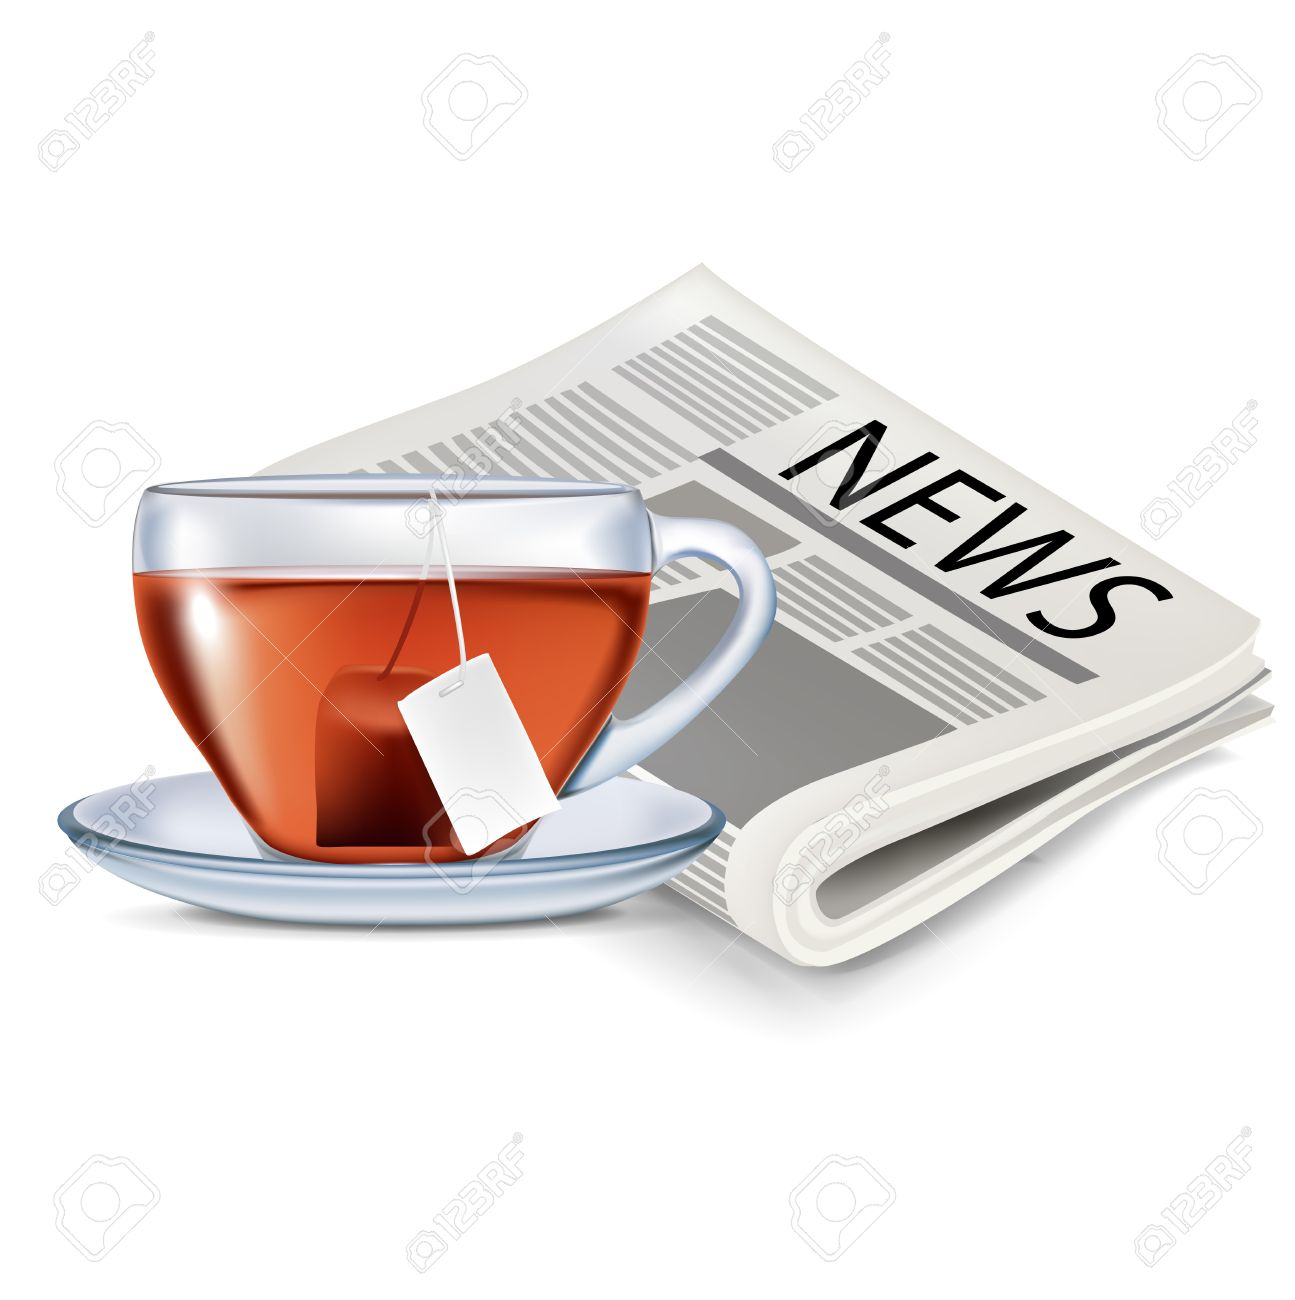 Image result for newspaper and a cup of tea clipart